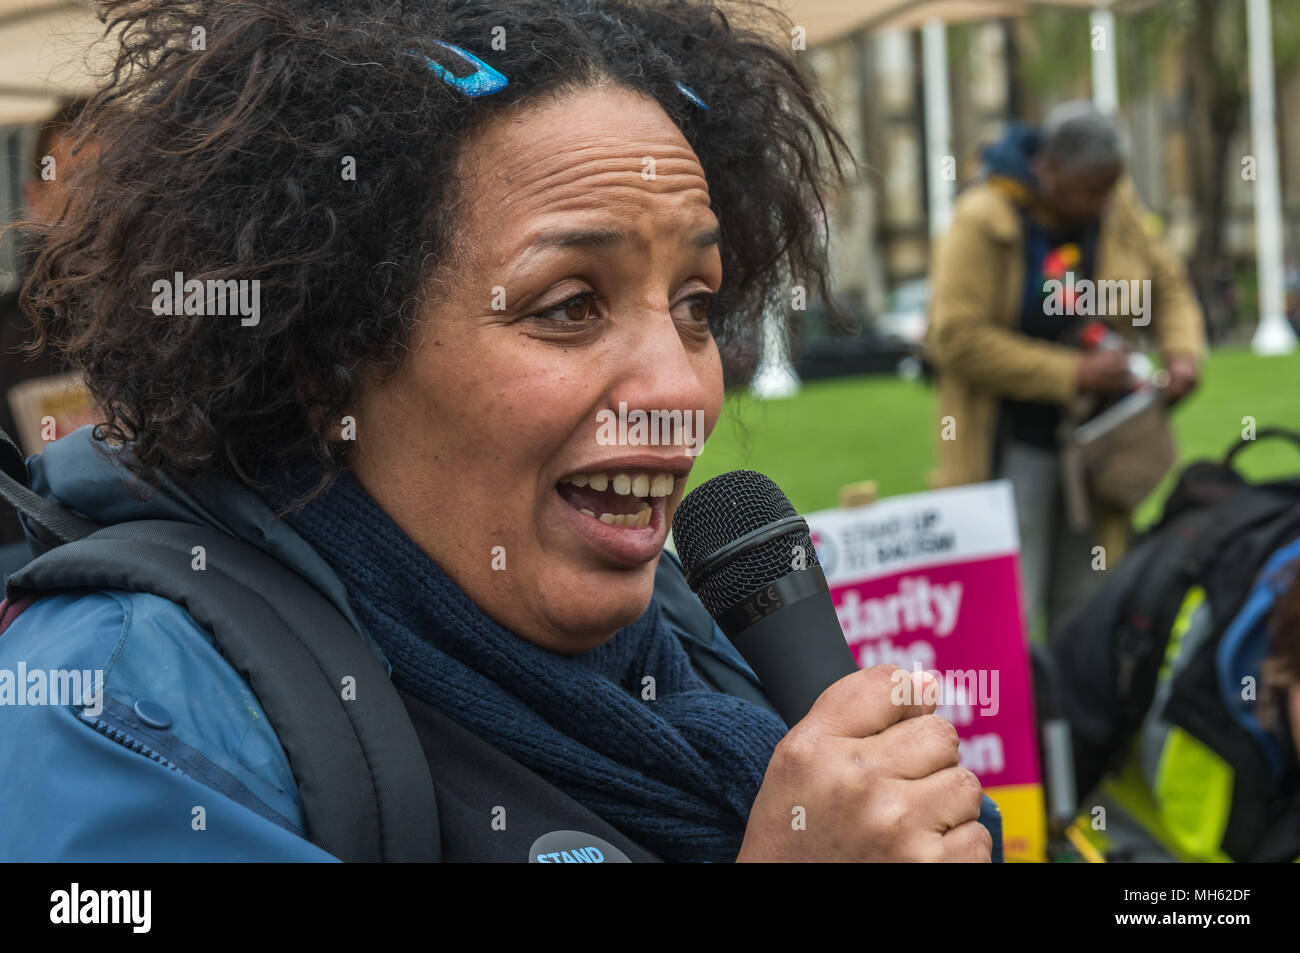 London, UK. 30th April 2018.  A London Stand Up To Racism supporter speaks at the protest in support of the petition calling for an end to the deportations of migrants in the 'Windrush generation' who arrived in Britain between 1948 and 1971. It calls on the government to change the burden of proof which means they are now required to prove their right to remain, and to provide compensation for any loss and hurt.. re for many years, paying taxes and raising families h Credit: Peter Marshall/Alamy Live News - Stock Image